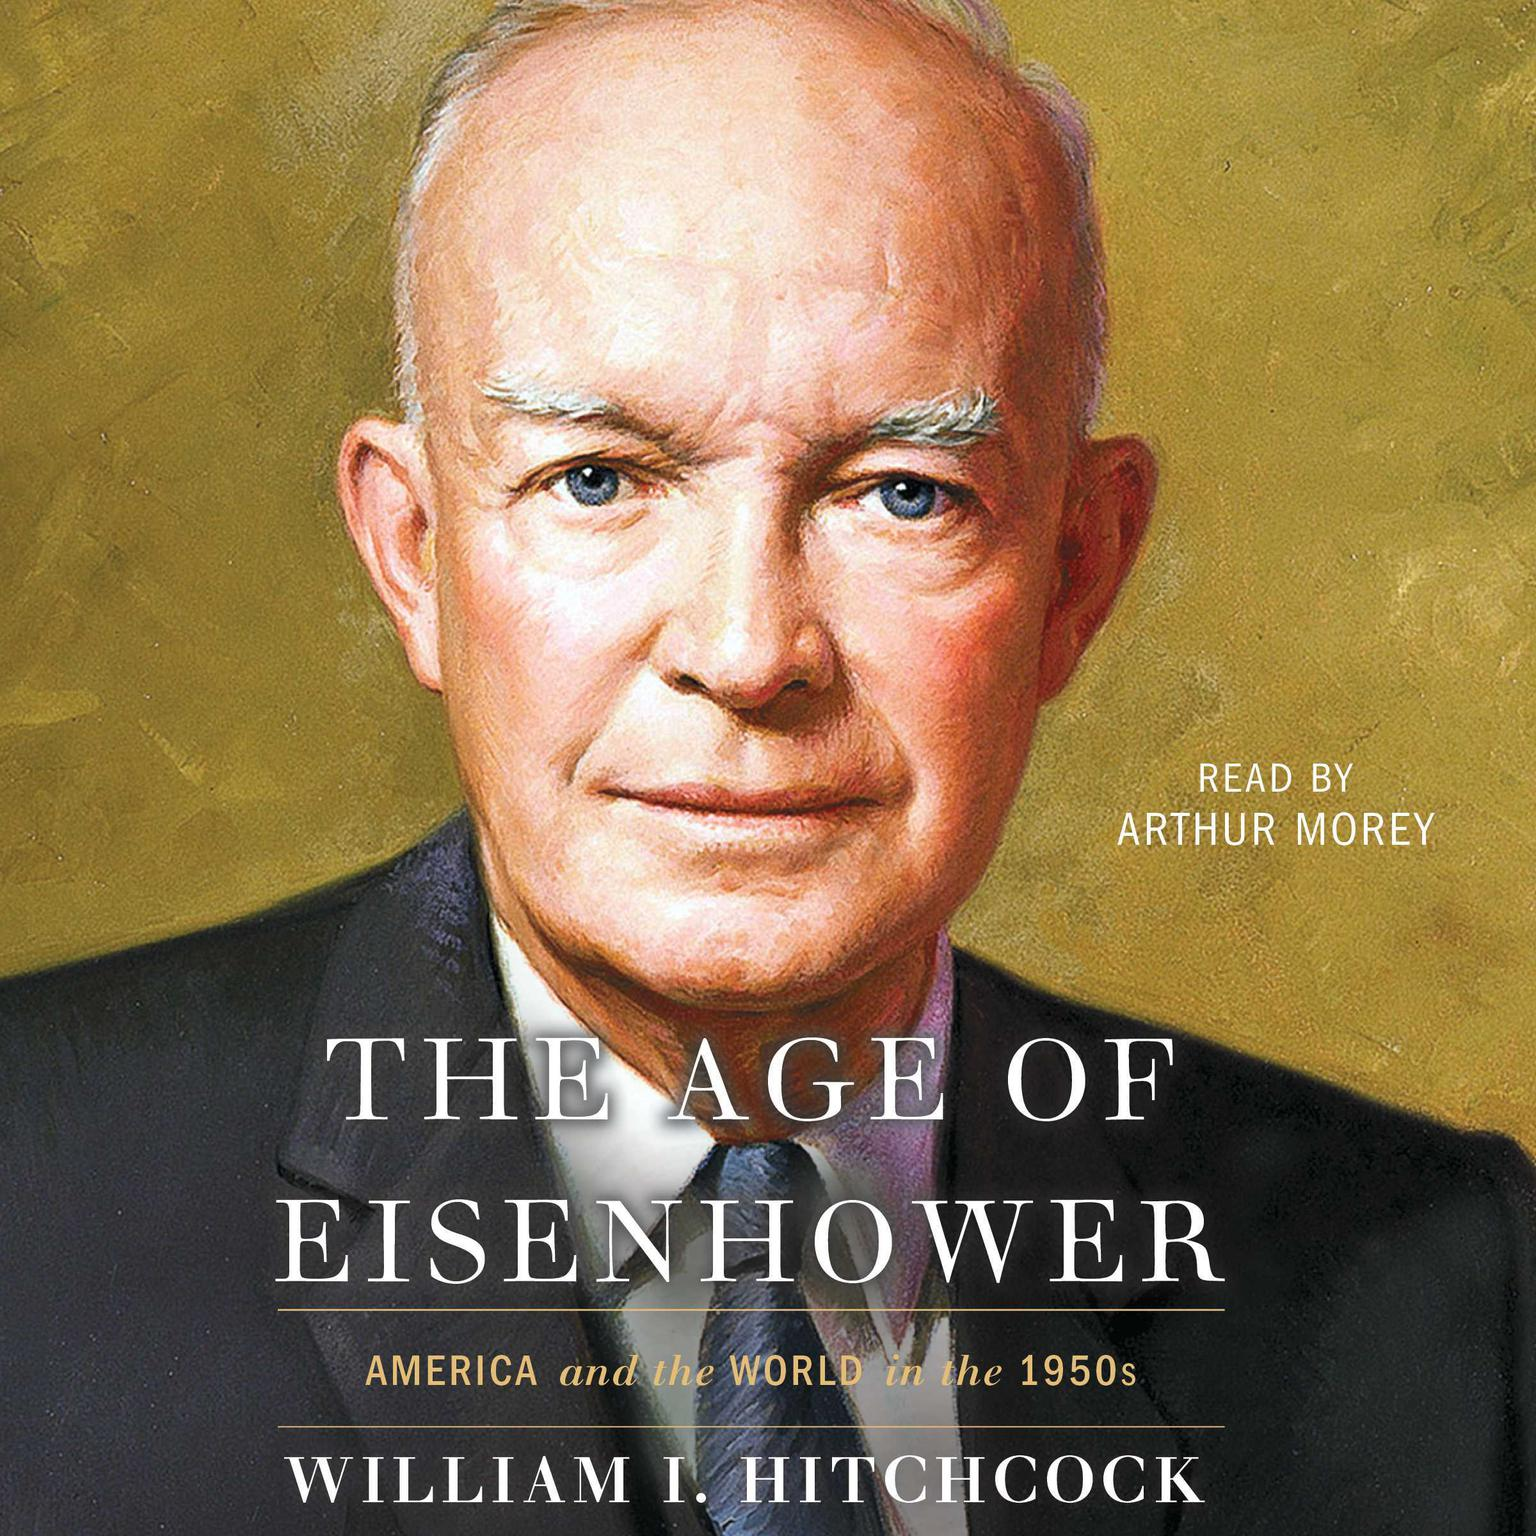 Printable The Age of Eisenhower: America and the World in the 1950s Audiobook Cover Art